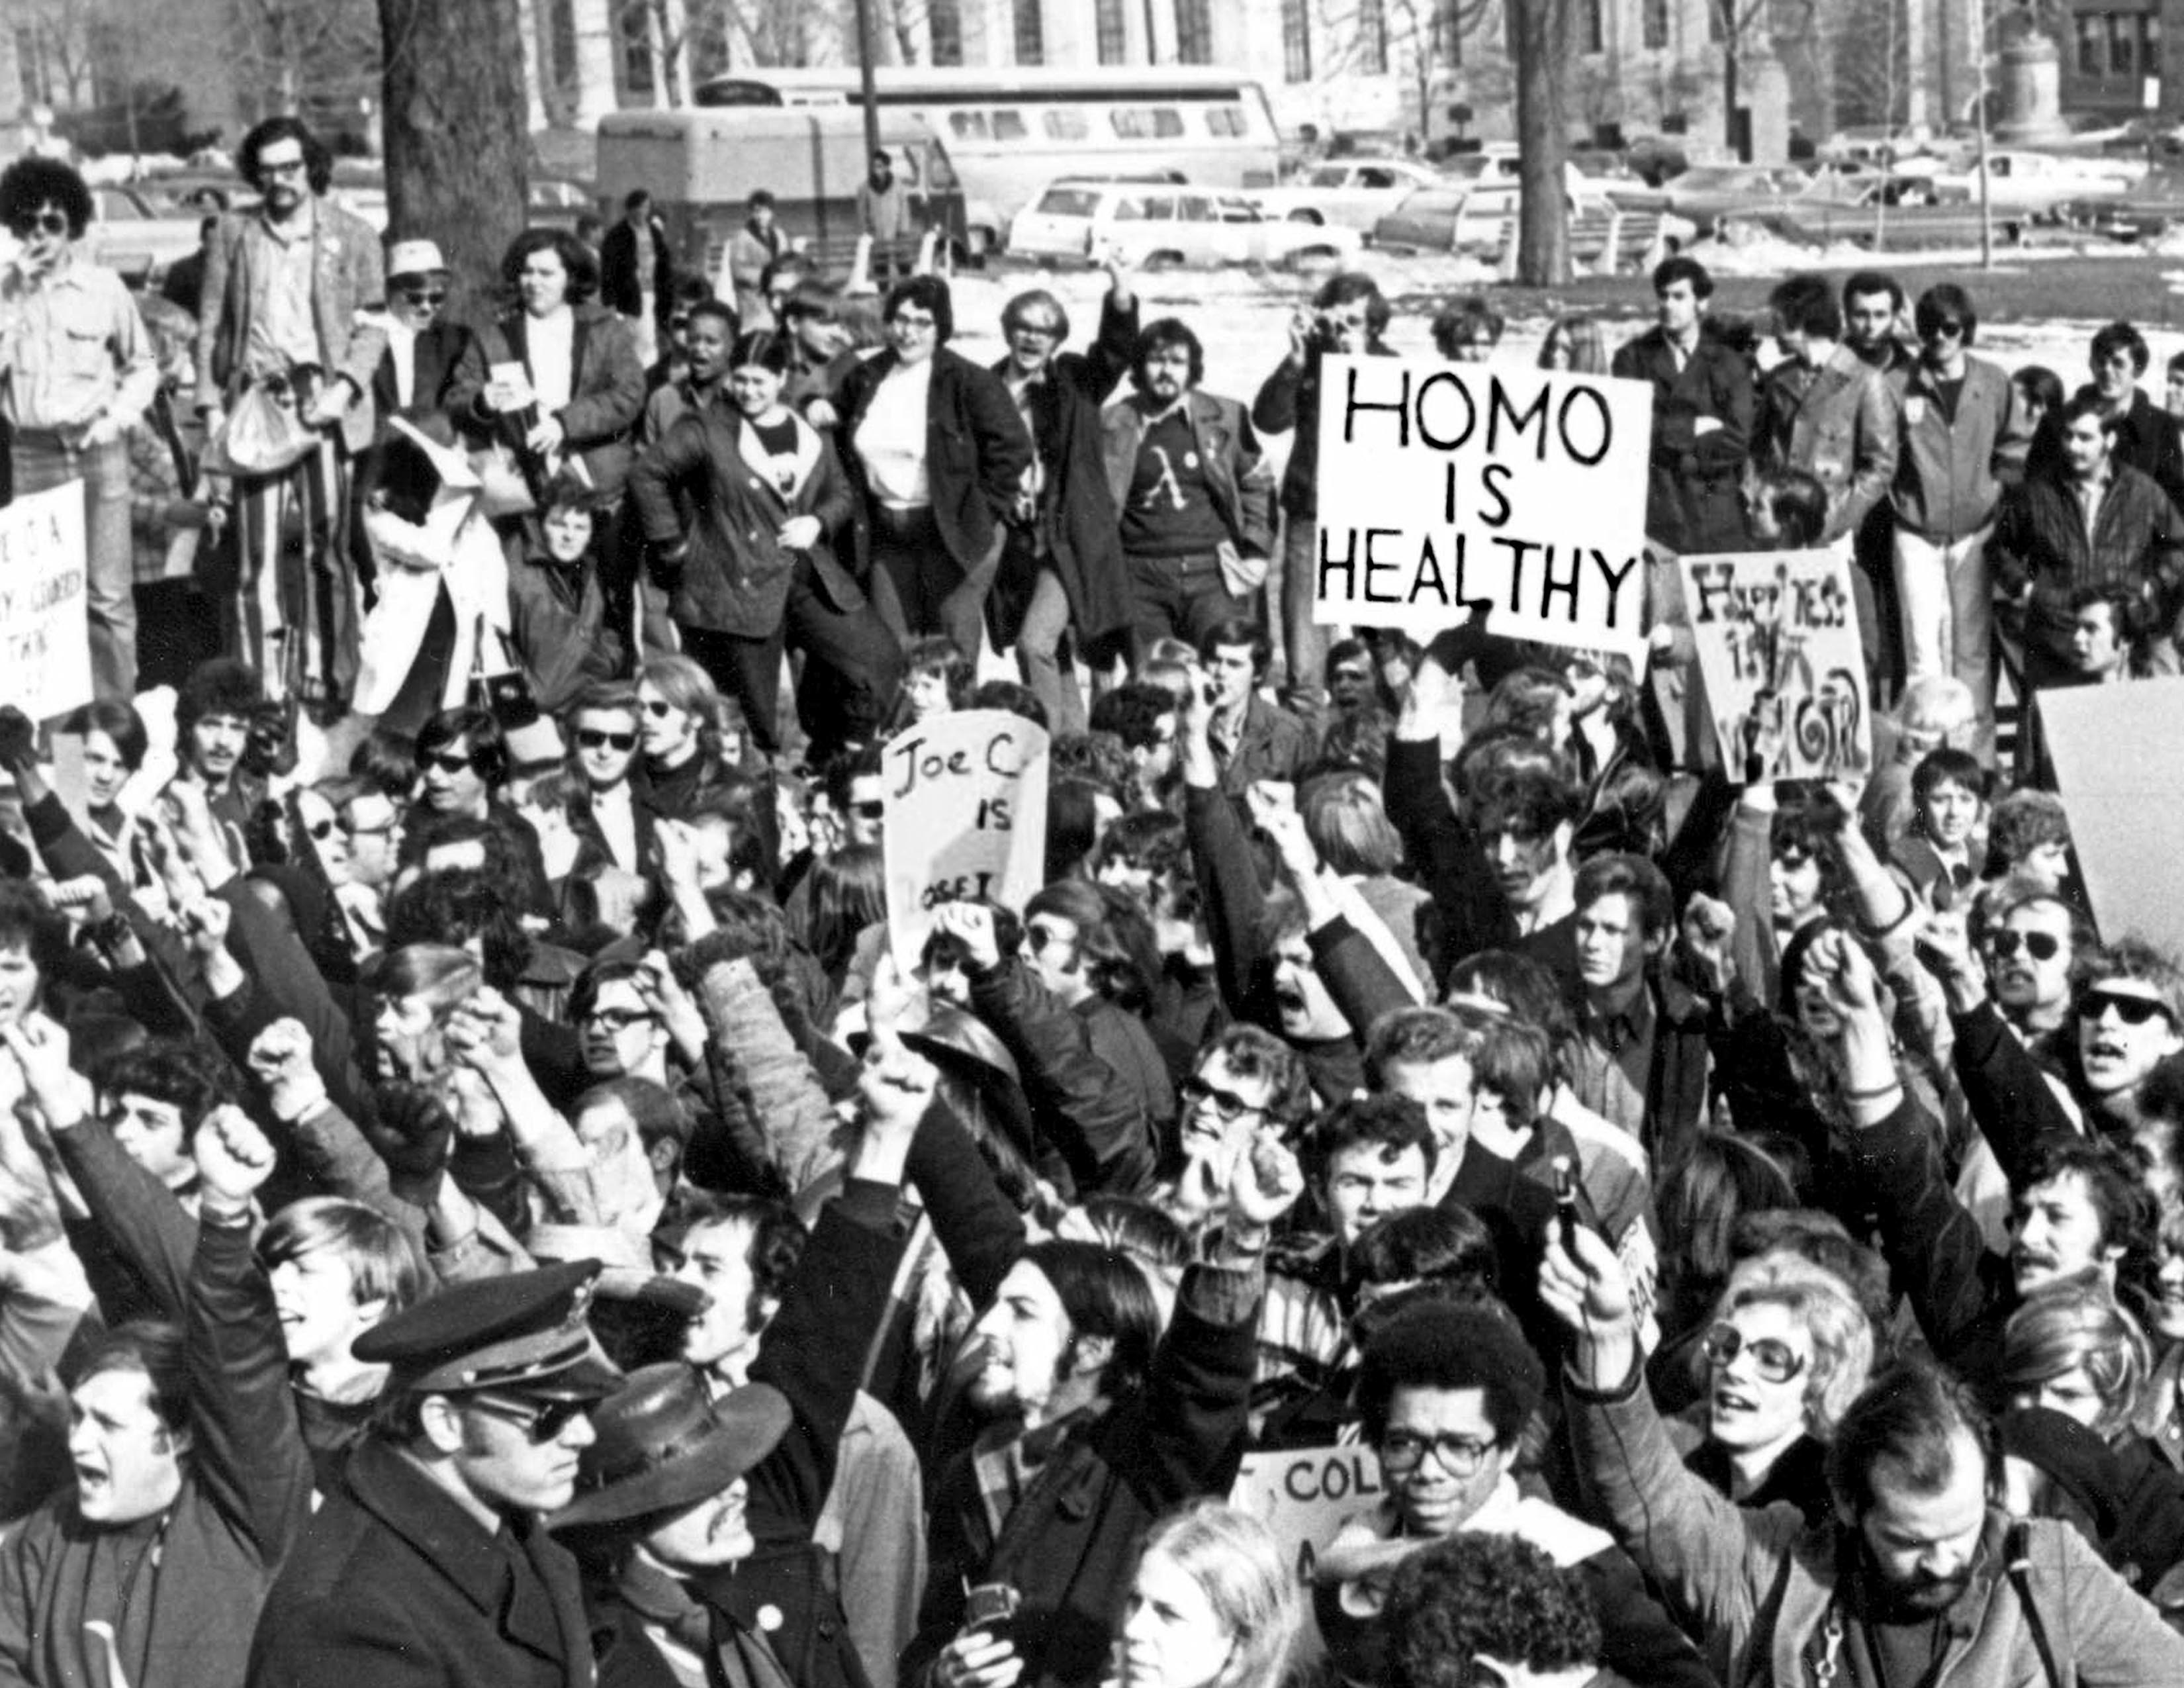 """Demonstrators gathered in Albany, New York, in 1971 to demand gay rights and to declare that """"Homo Is Healthy."""" Credit: Richard C. Wandel Photographs, The LGBT Community Center National History Archive"""